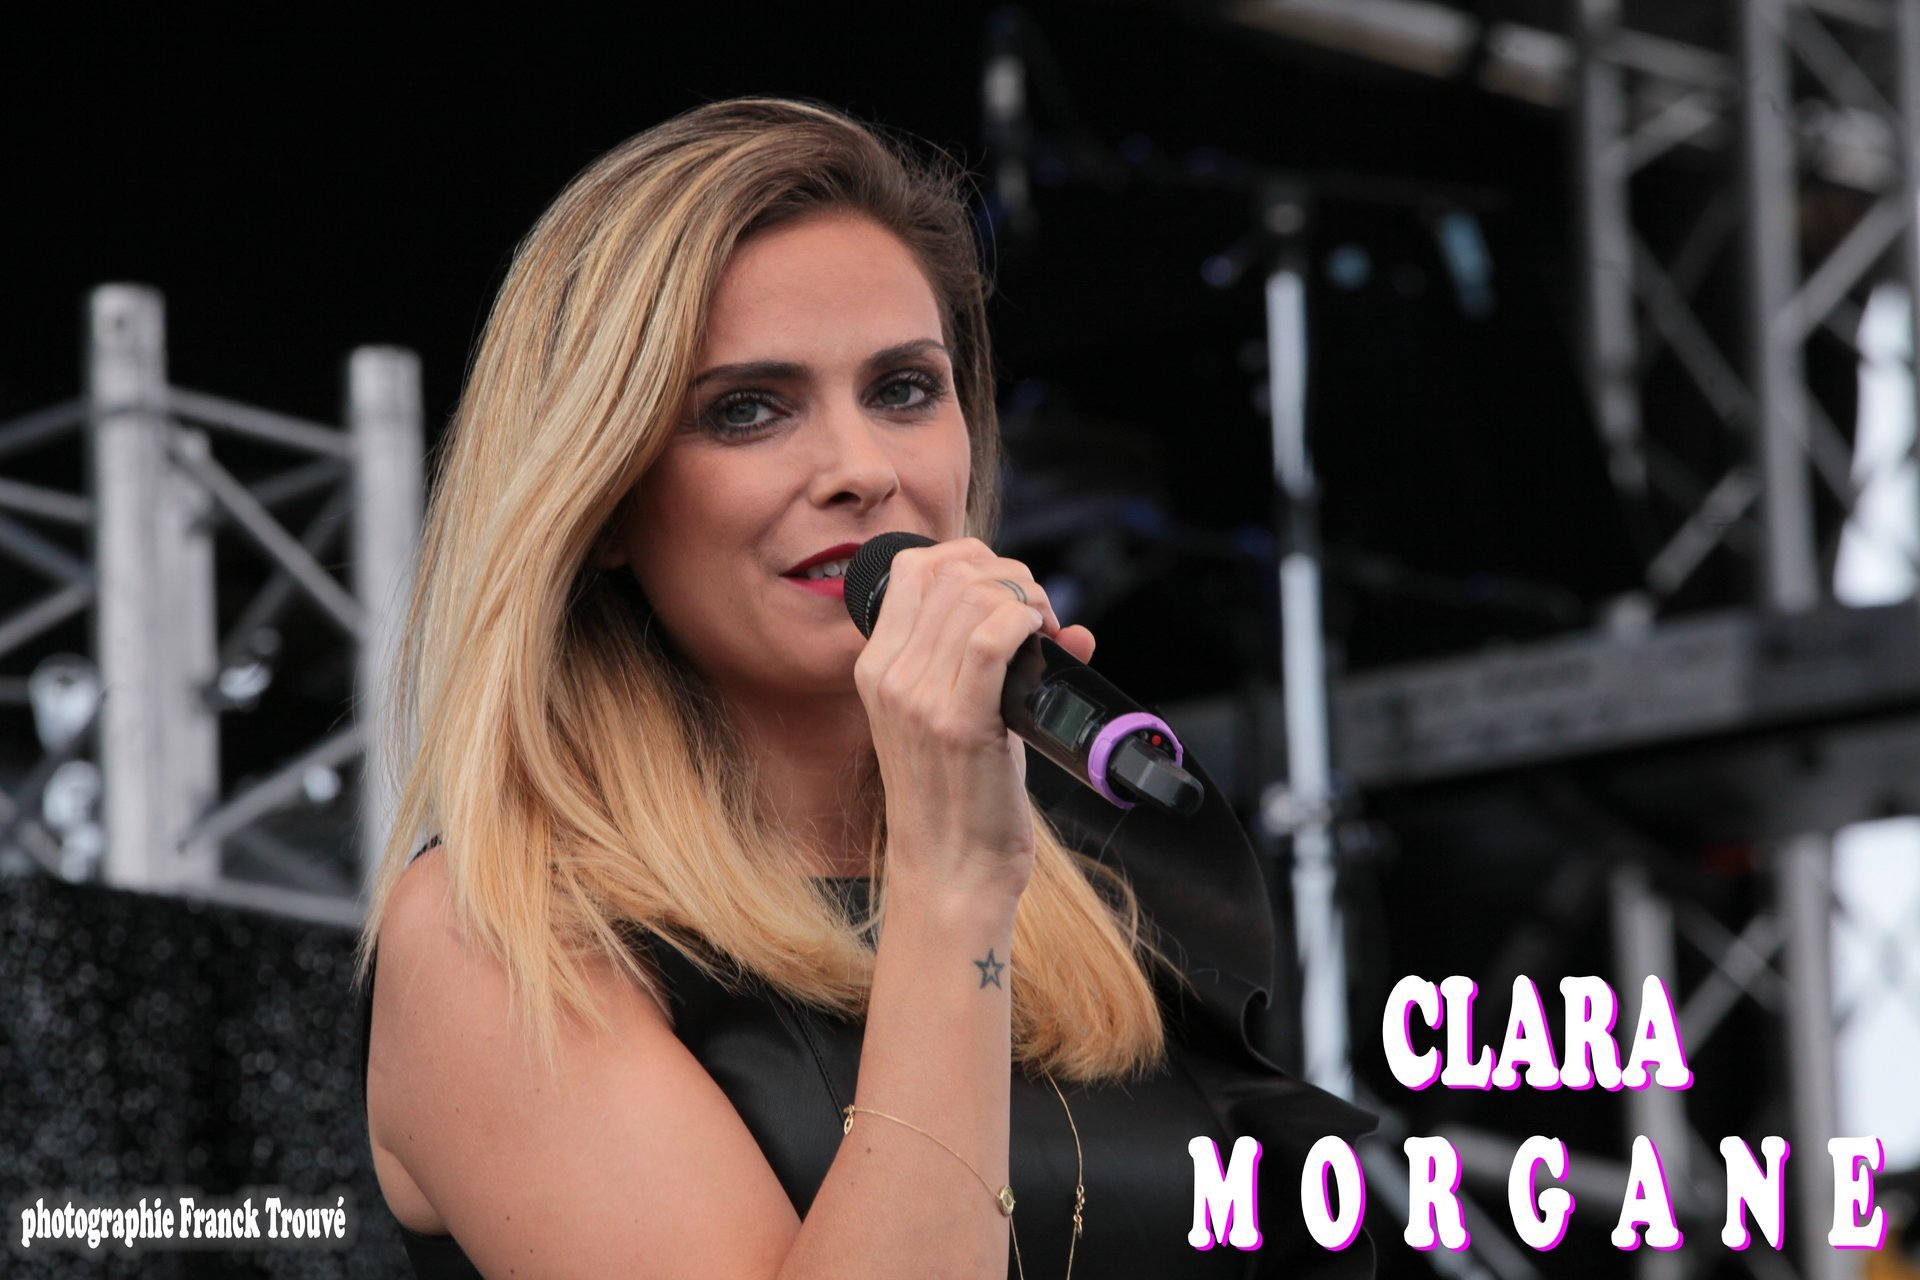 clara morgane photo franck trouve